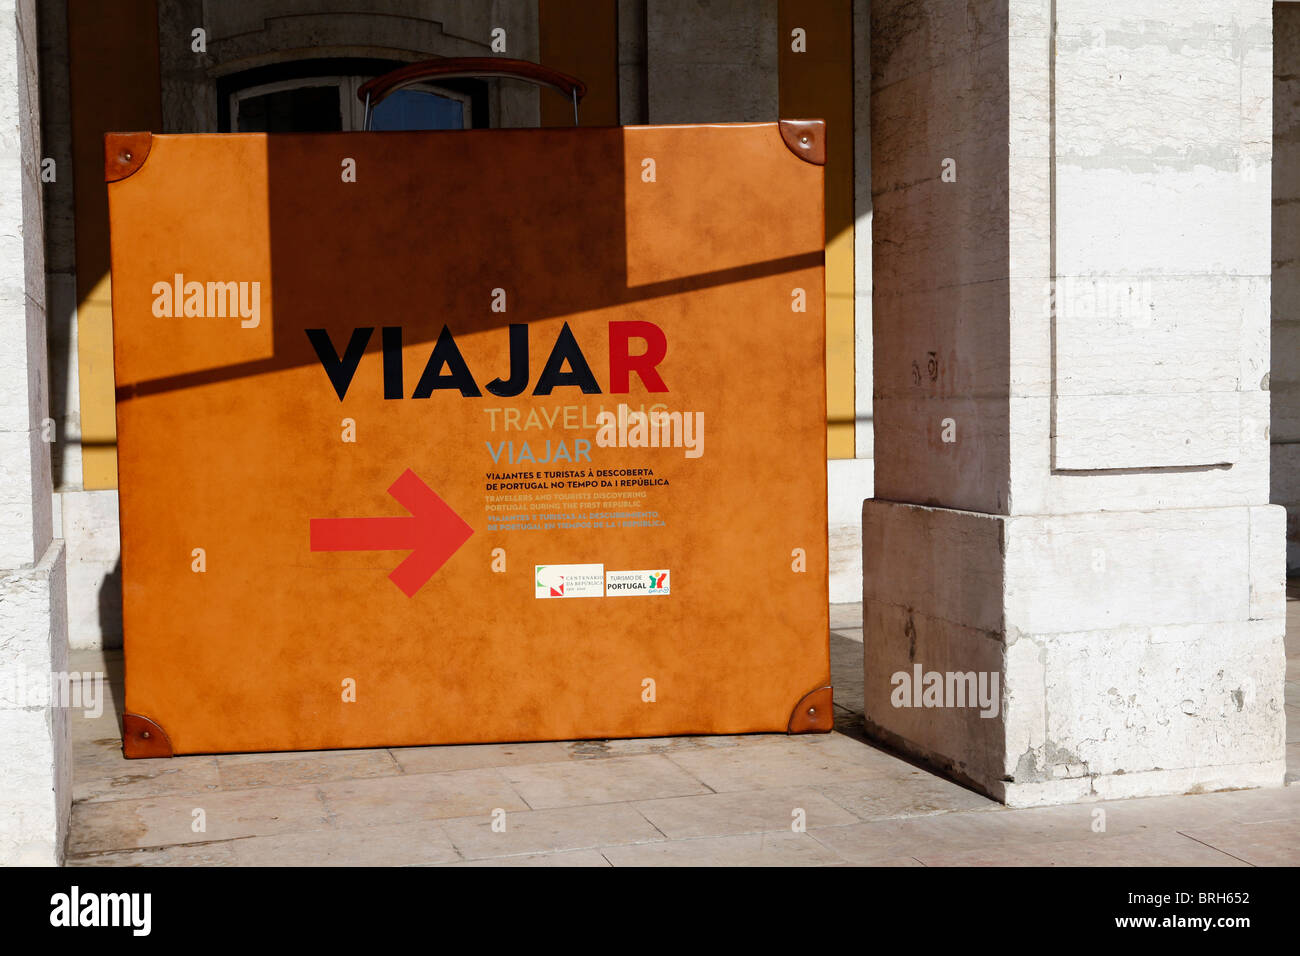 A suitcase advertises the Viajar (Travelling) exhibition in Lisbon, Portugal. - Stock Image